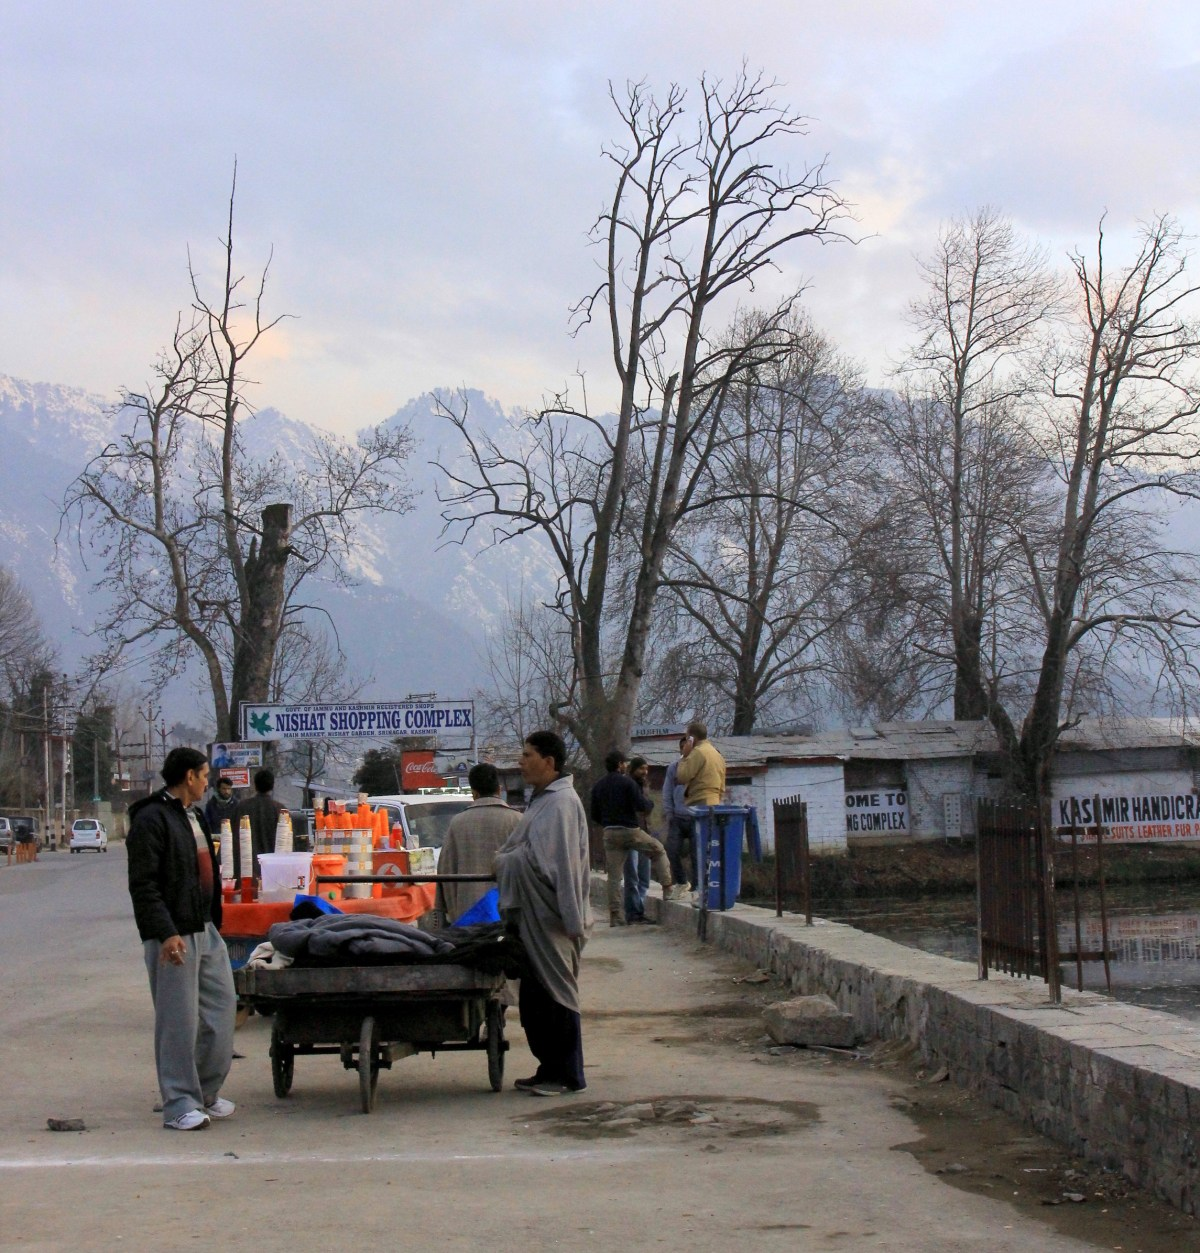 A scene from Kashmir in winter